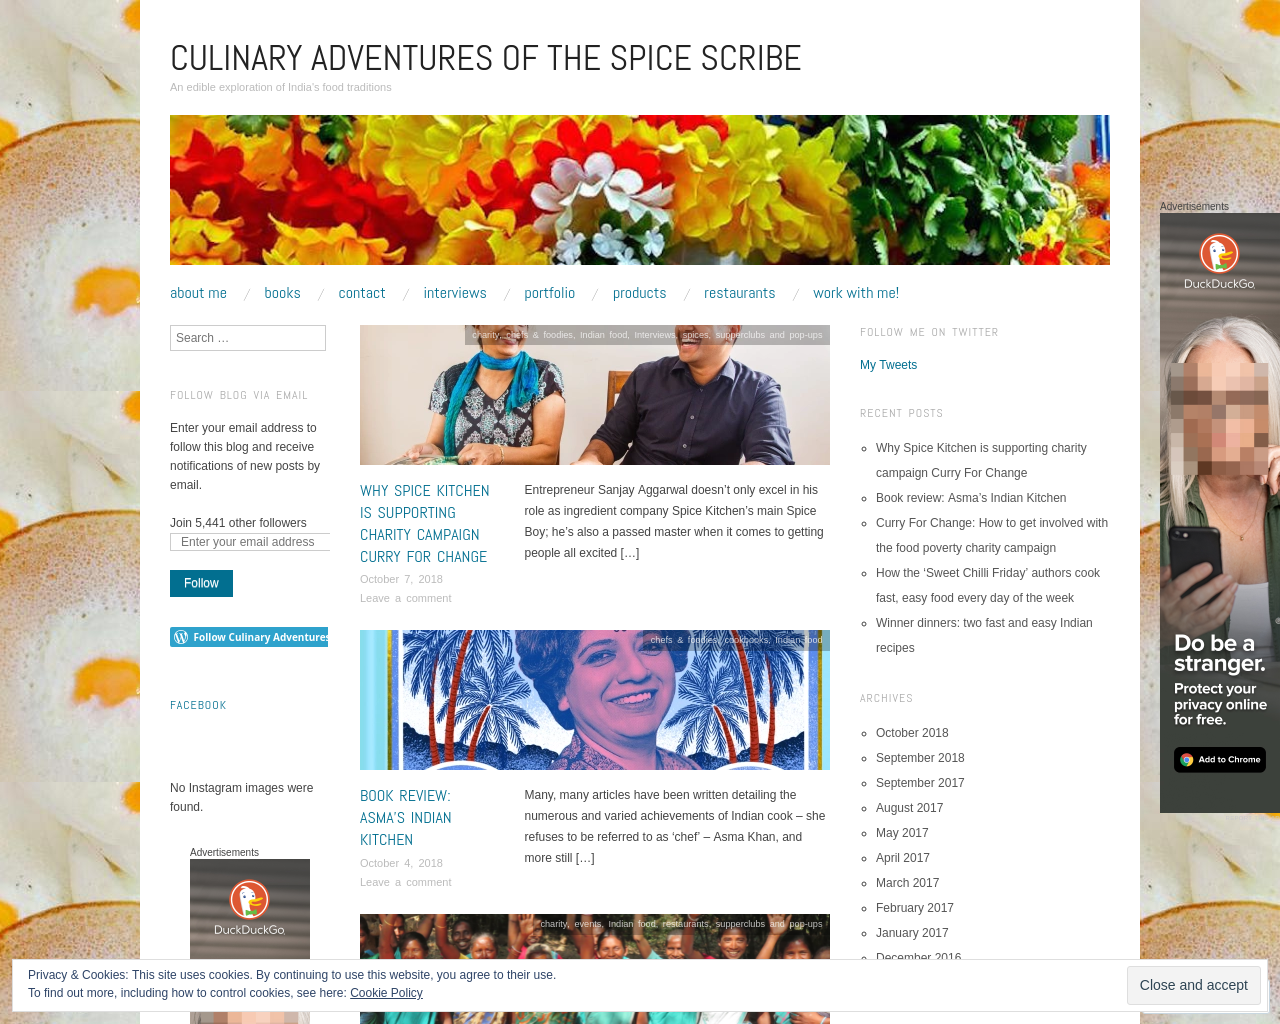 Culinary Adventures of The Spice Scribe